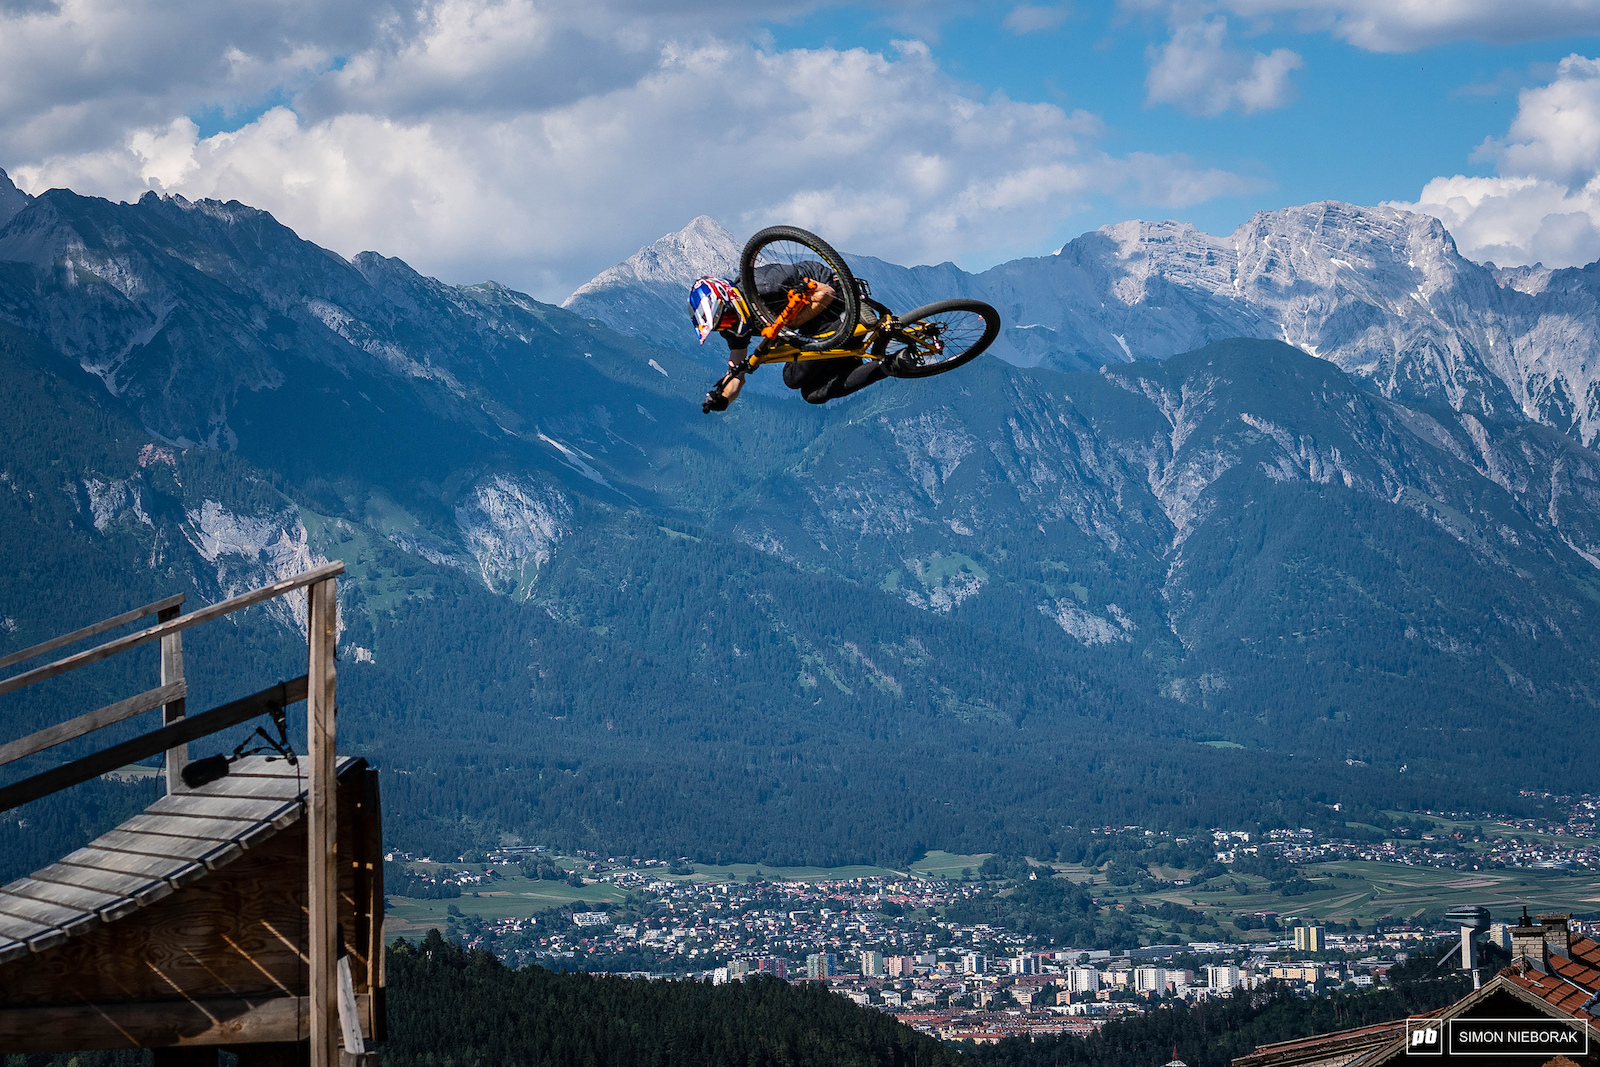 After the nasty injury Thomas Genon caught at FISE it s was great to see him healthy and going big here in Innsbruck.